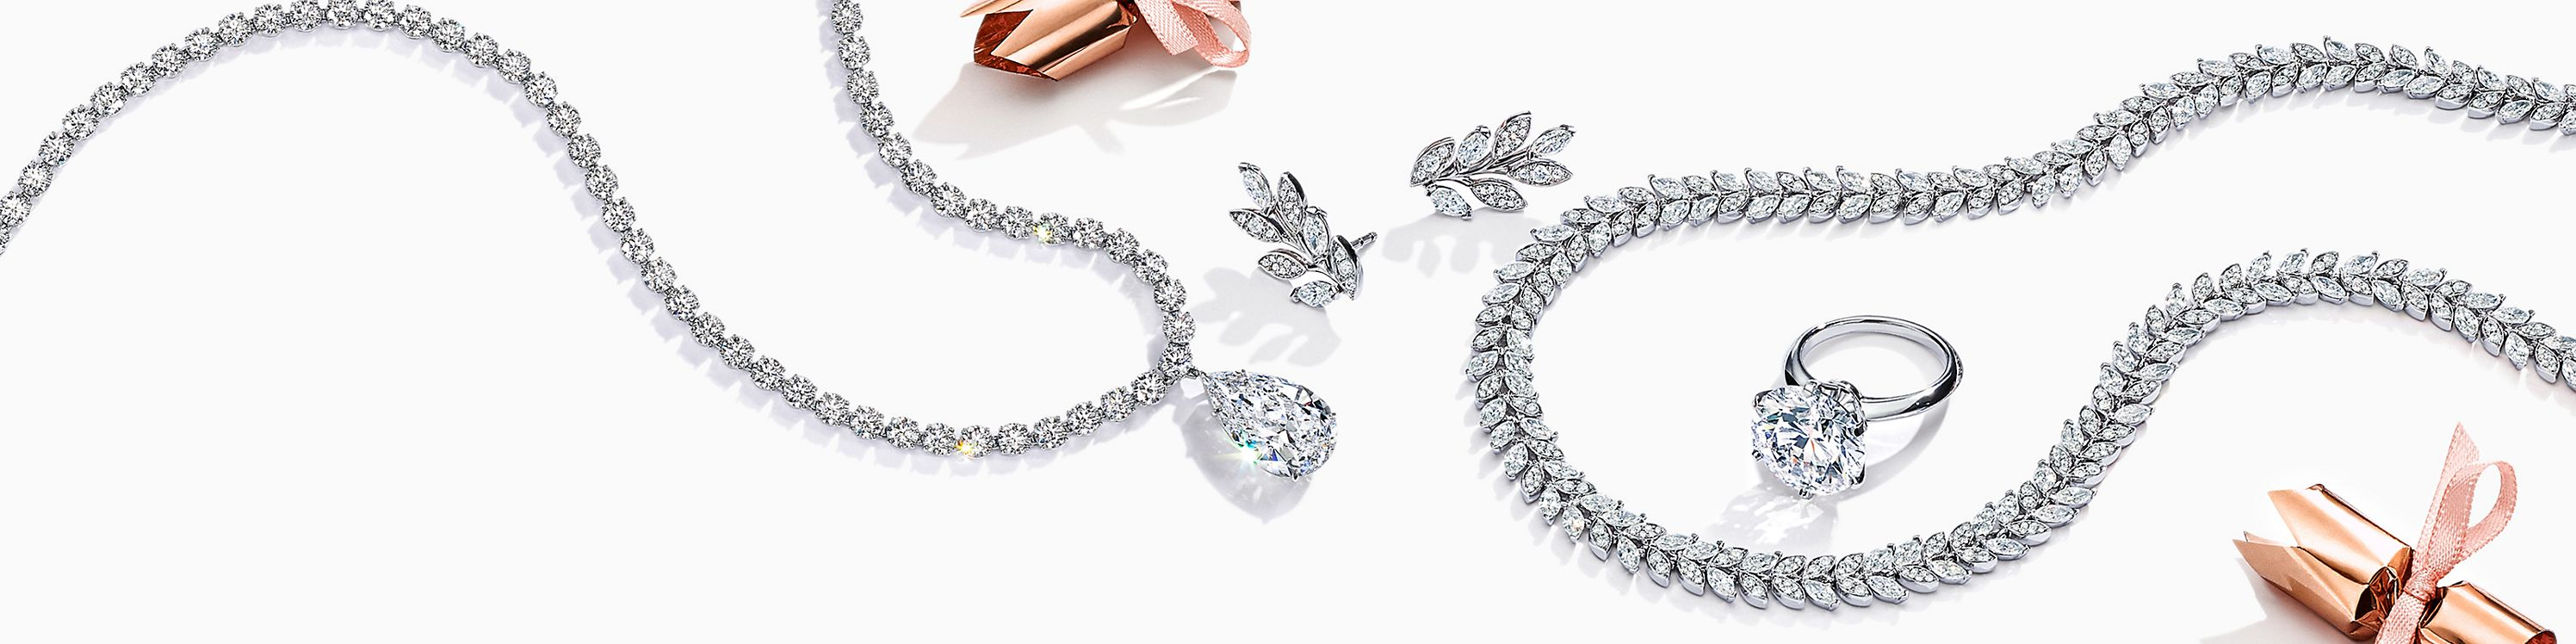 Tiffany & Co. Diamond Jewelry